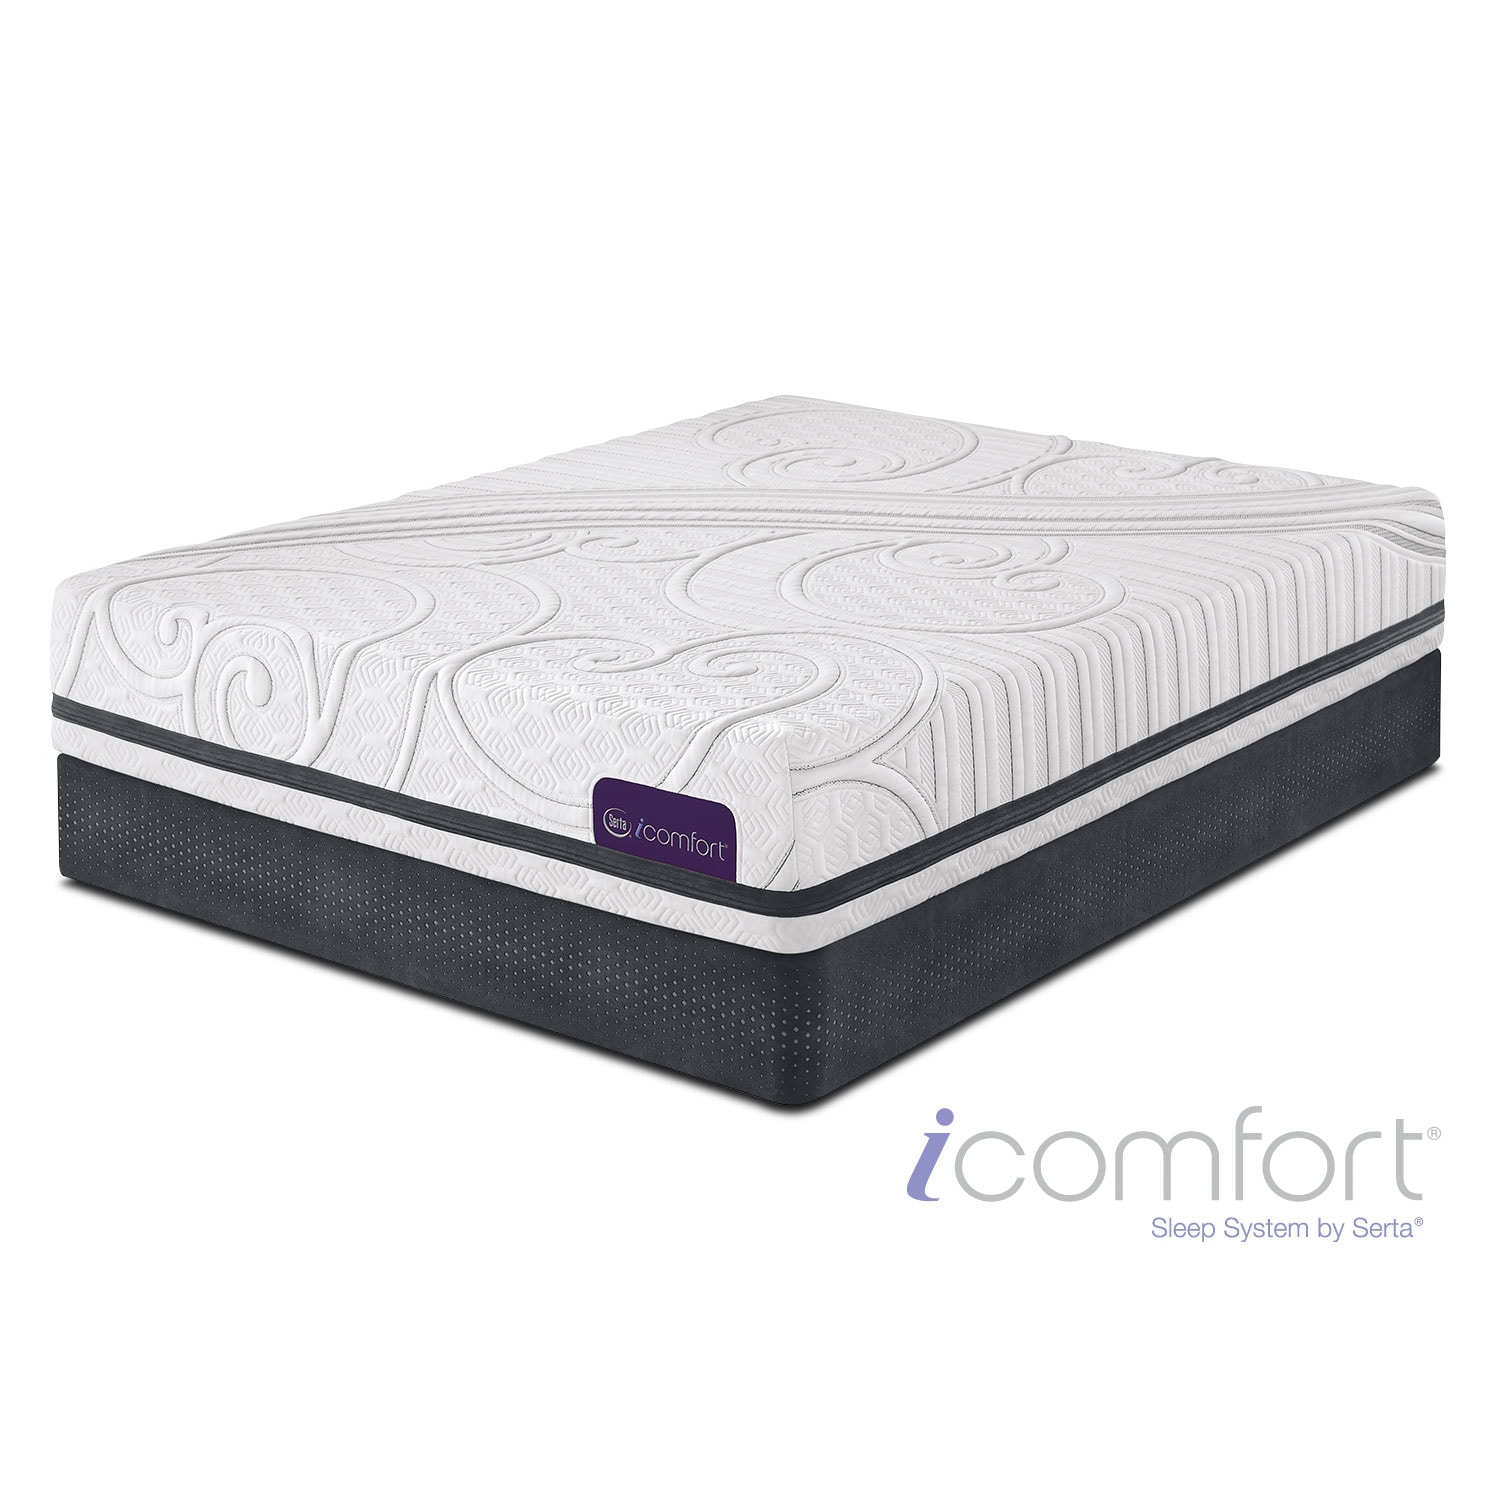 Mattresses and Bedding - Savant III Plush Queen Mattress/Split Foundation Set